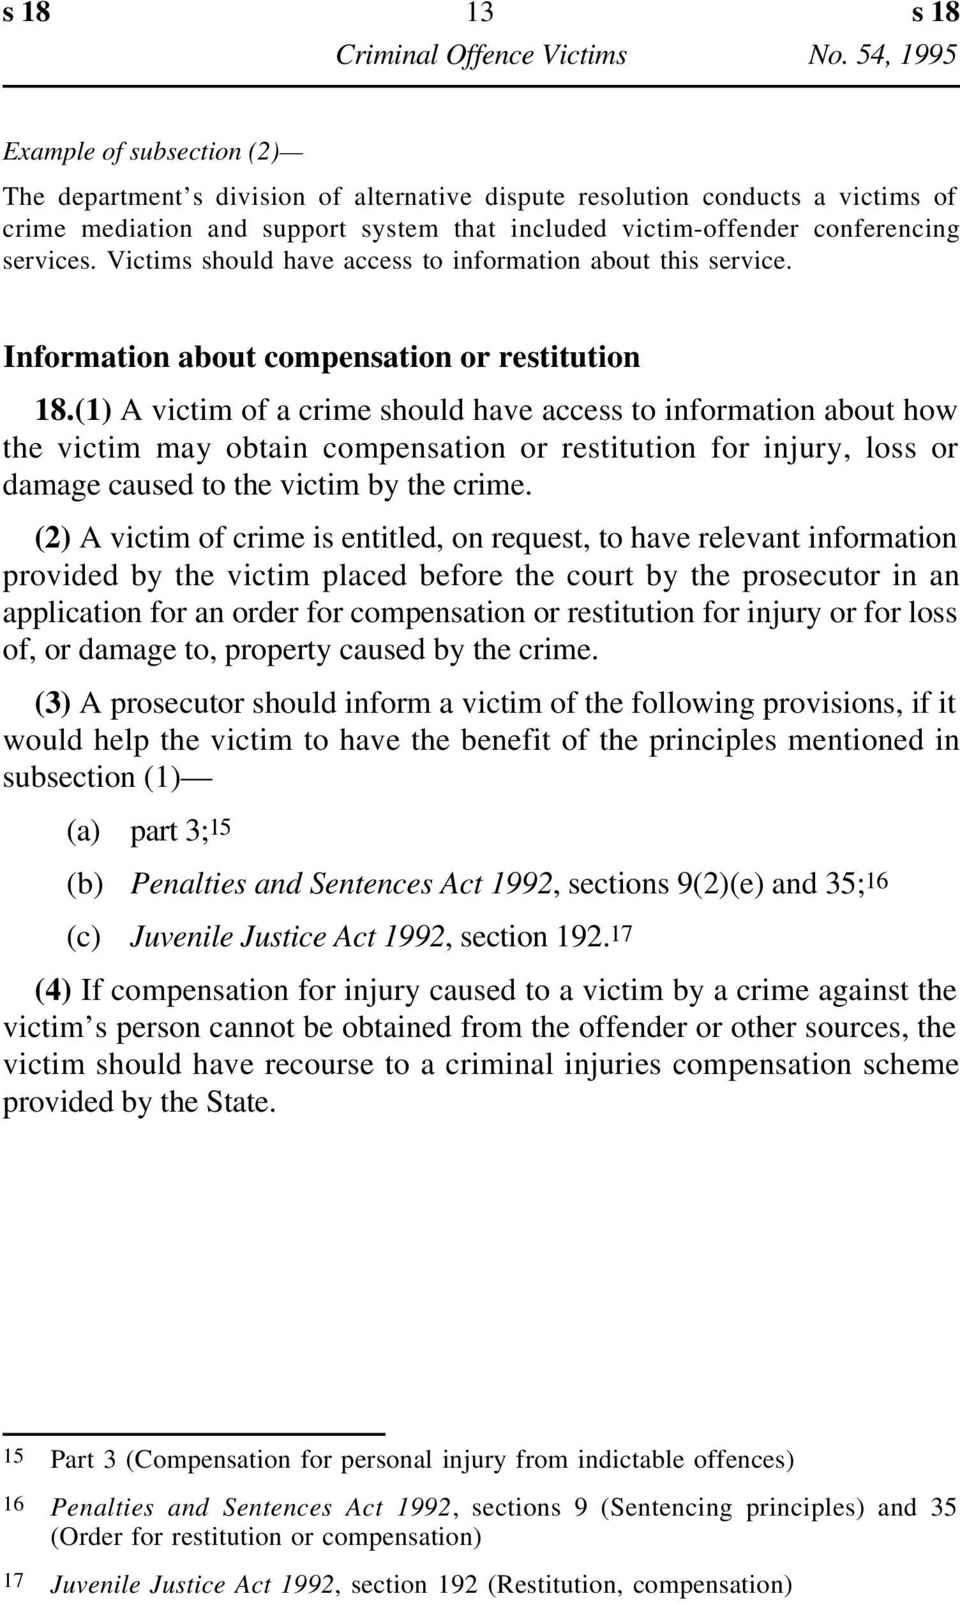 (1) A victim of a crime should have access to information about how the victim may obtain compensation or restitution for injury, loss or damage caused to the victim by the crime.